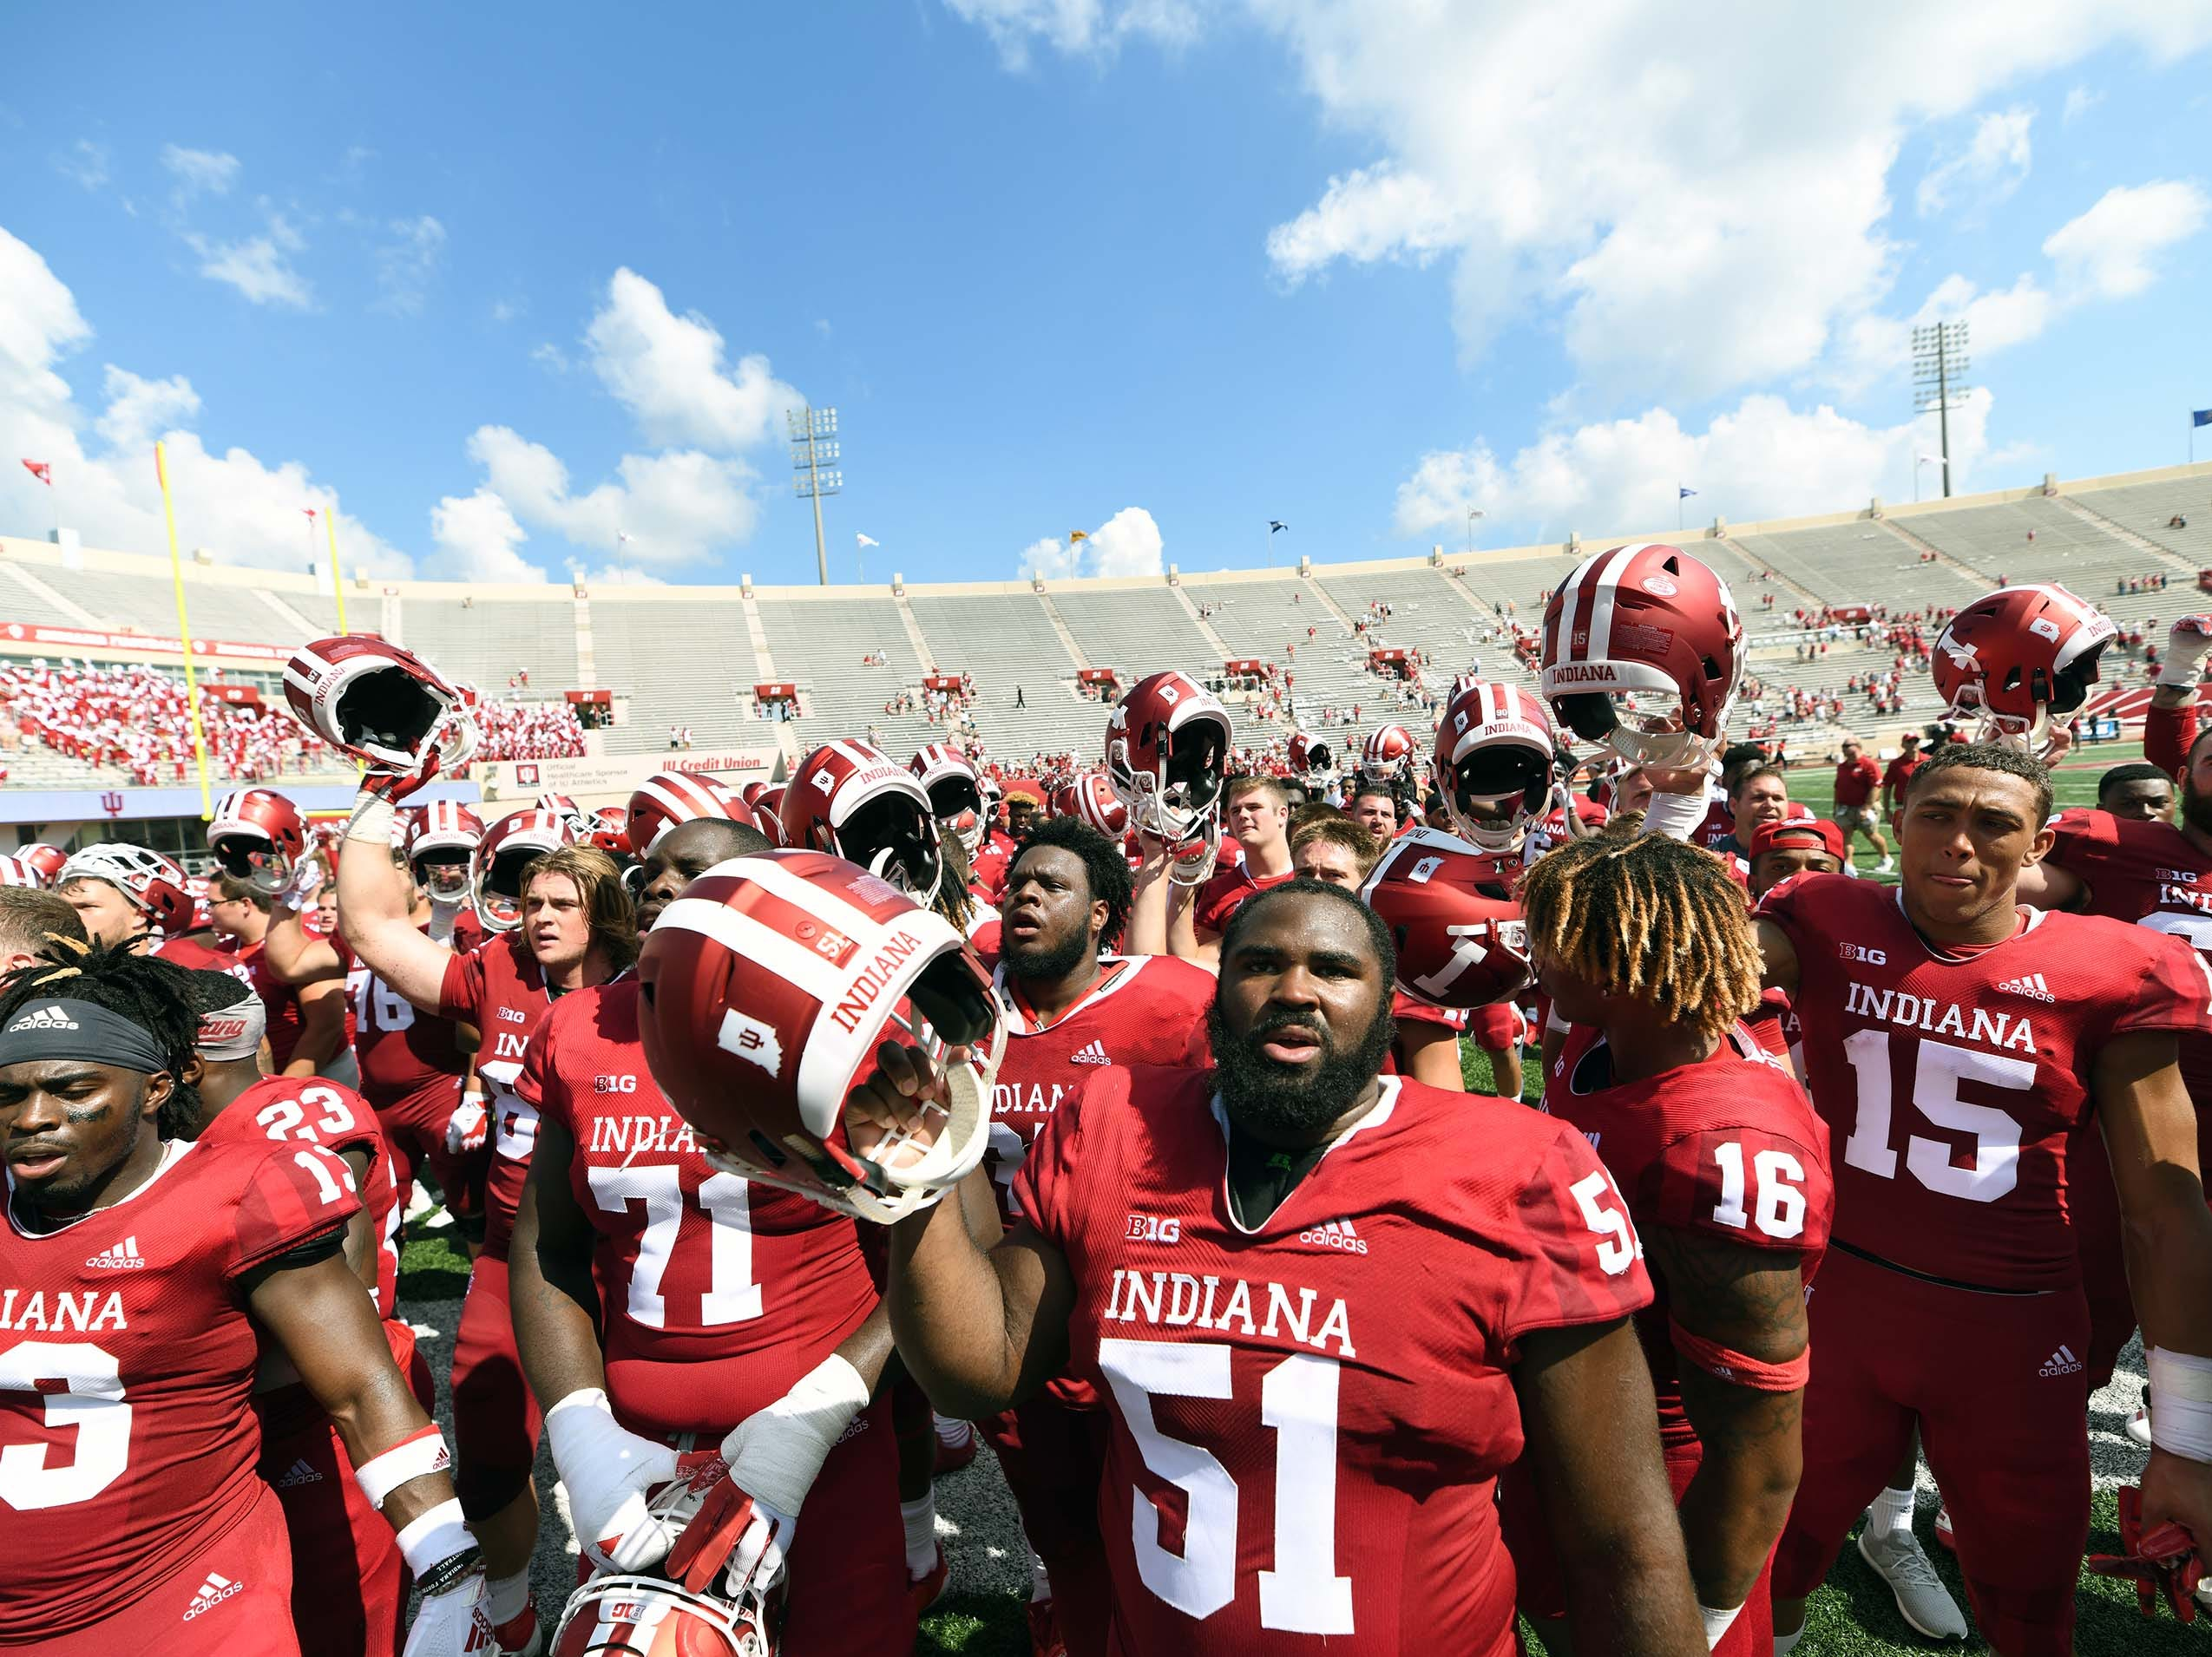 The Indiana Hoosiers celebrate after defeating Ball State at Memorial Stadium in Bloomington, Ind., on Saturday, Sept. 15, 2018.